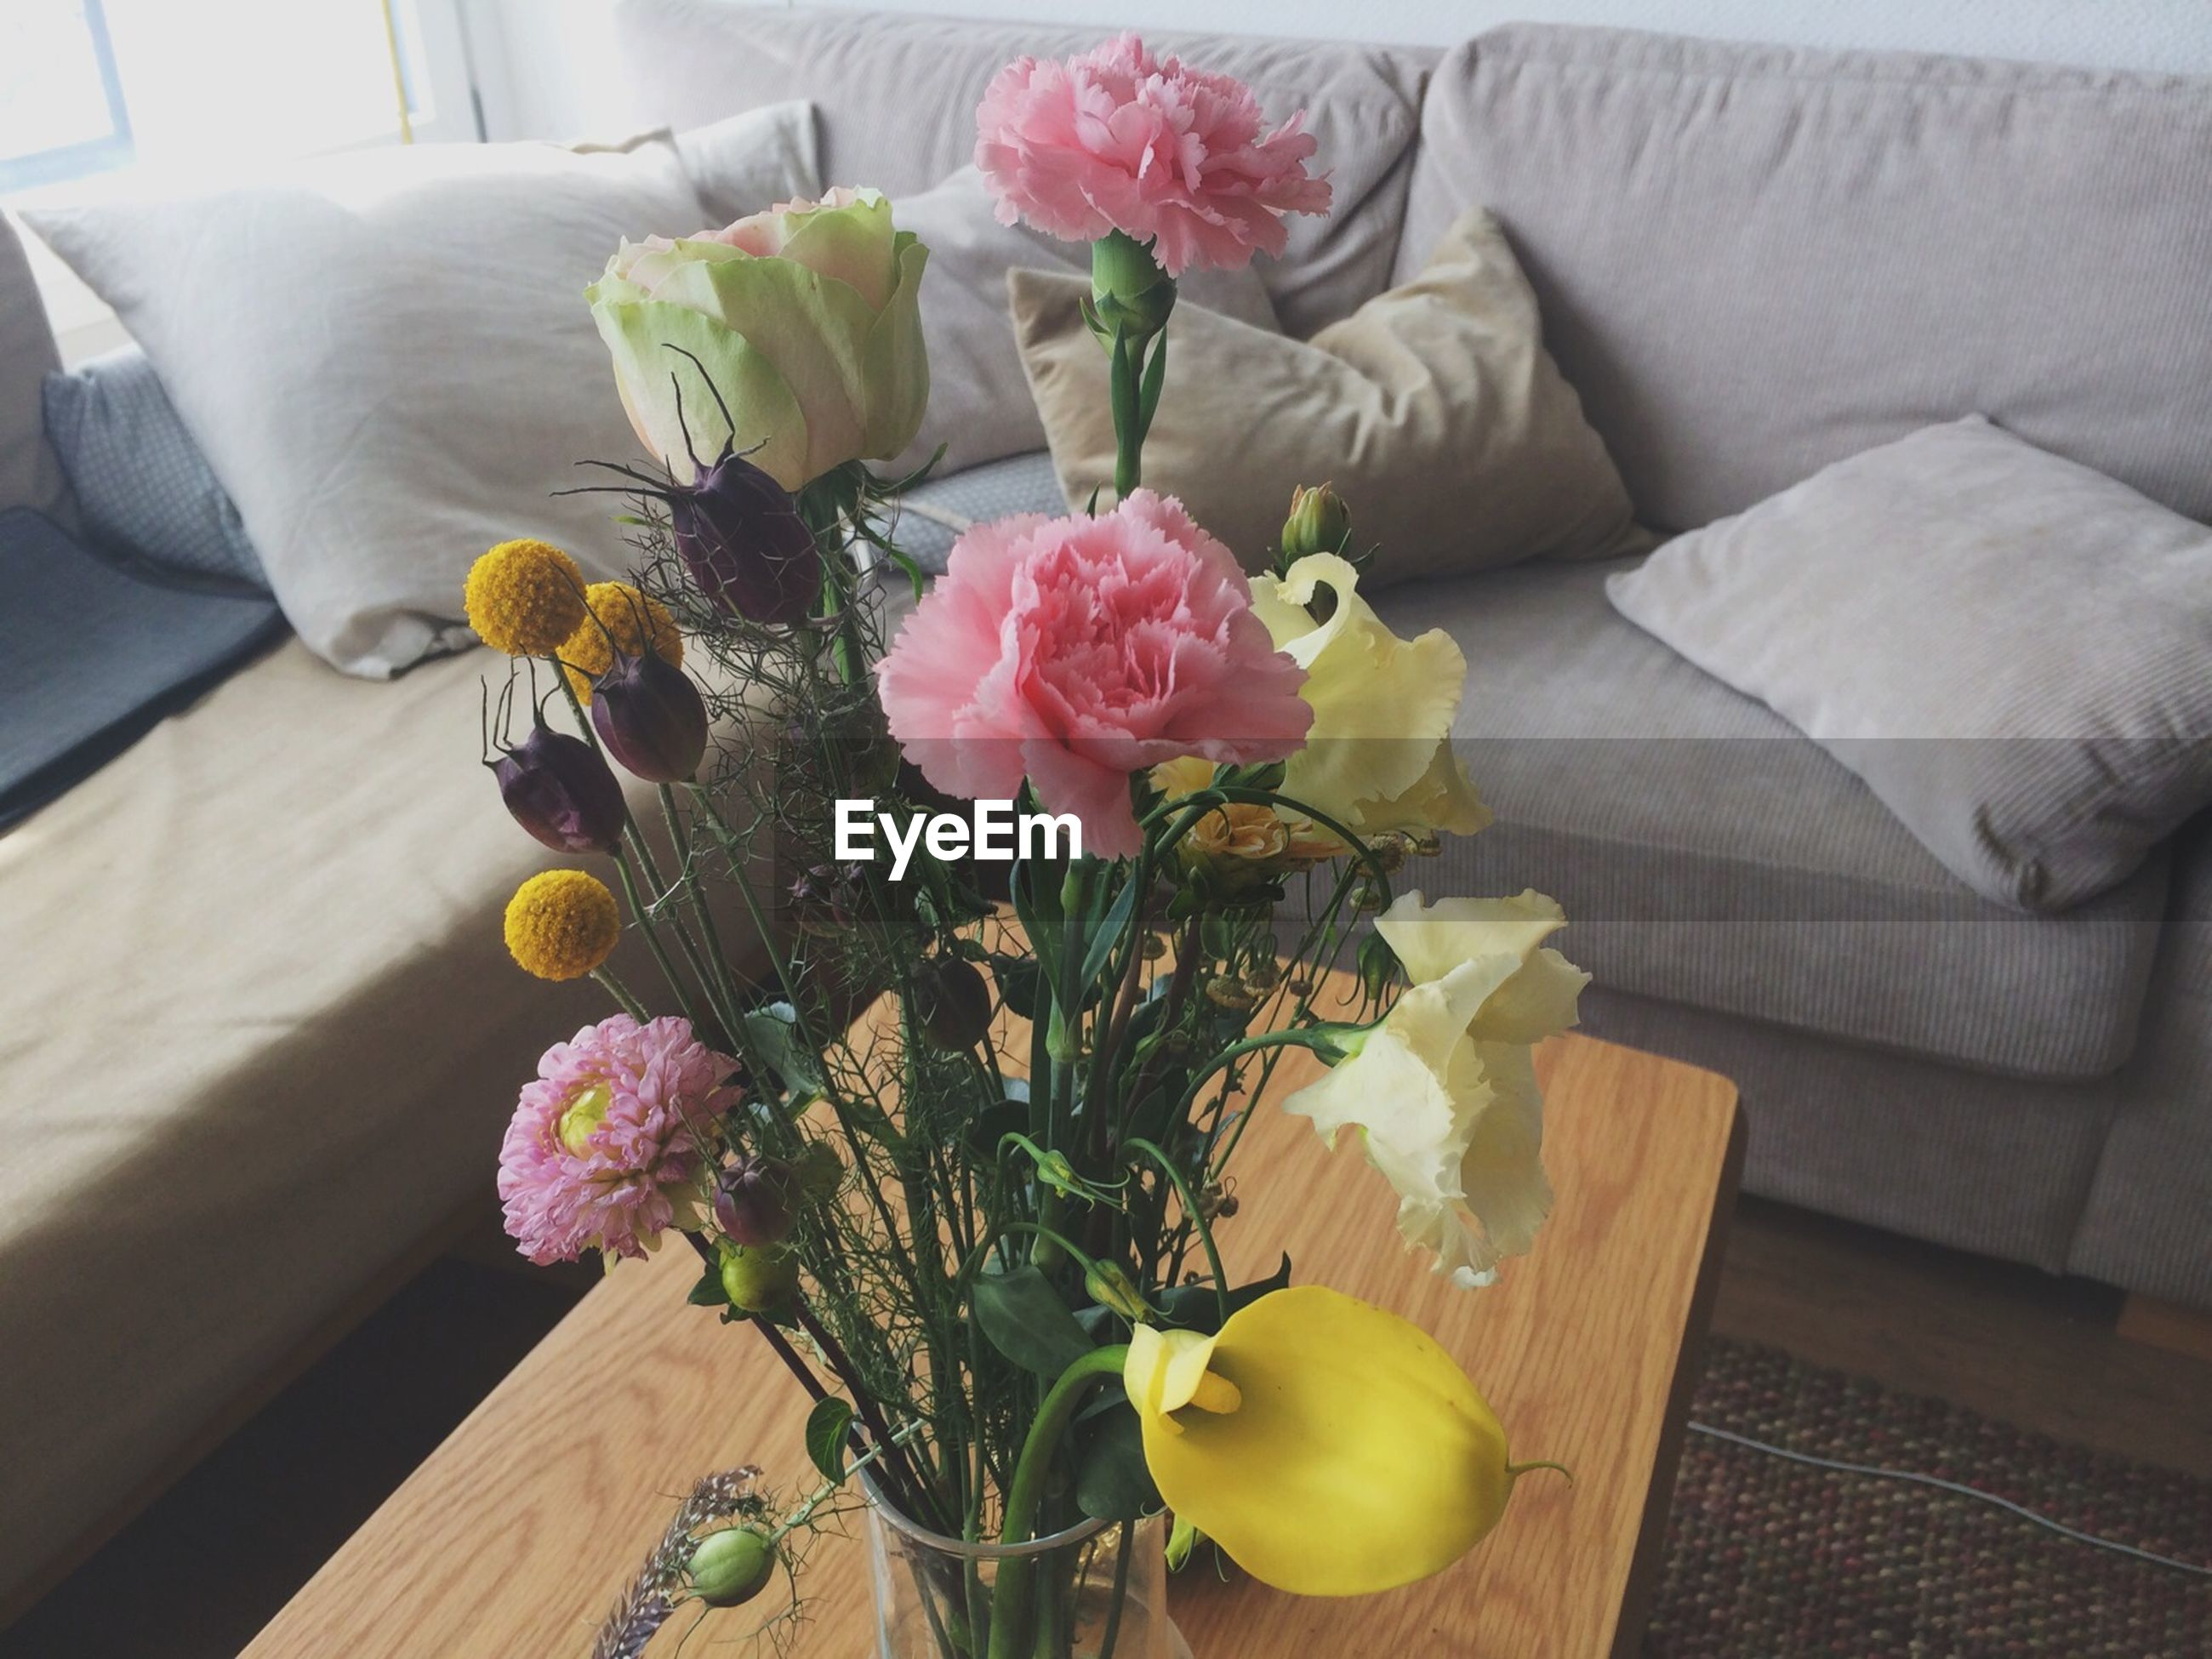 Flower vase kept on coffee table at home